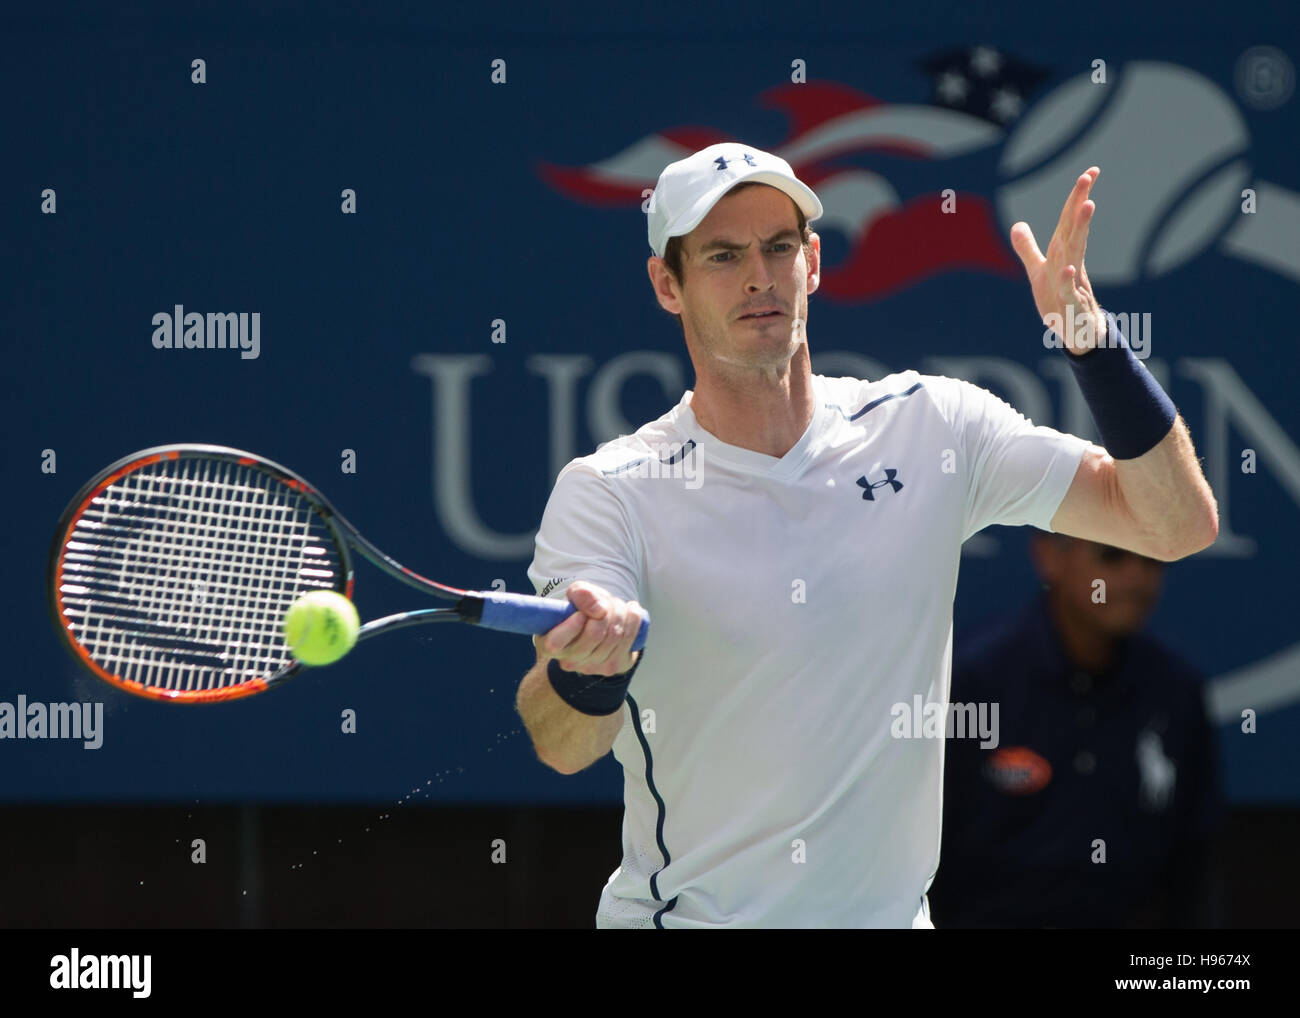 Andy Murray (GBR) at the US Open 2016 Championships in Flushing Meadows,New York,USA. Stock Photo